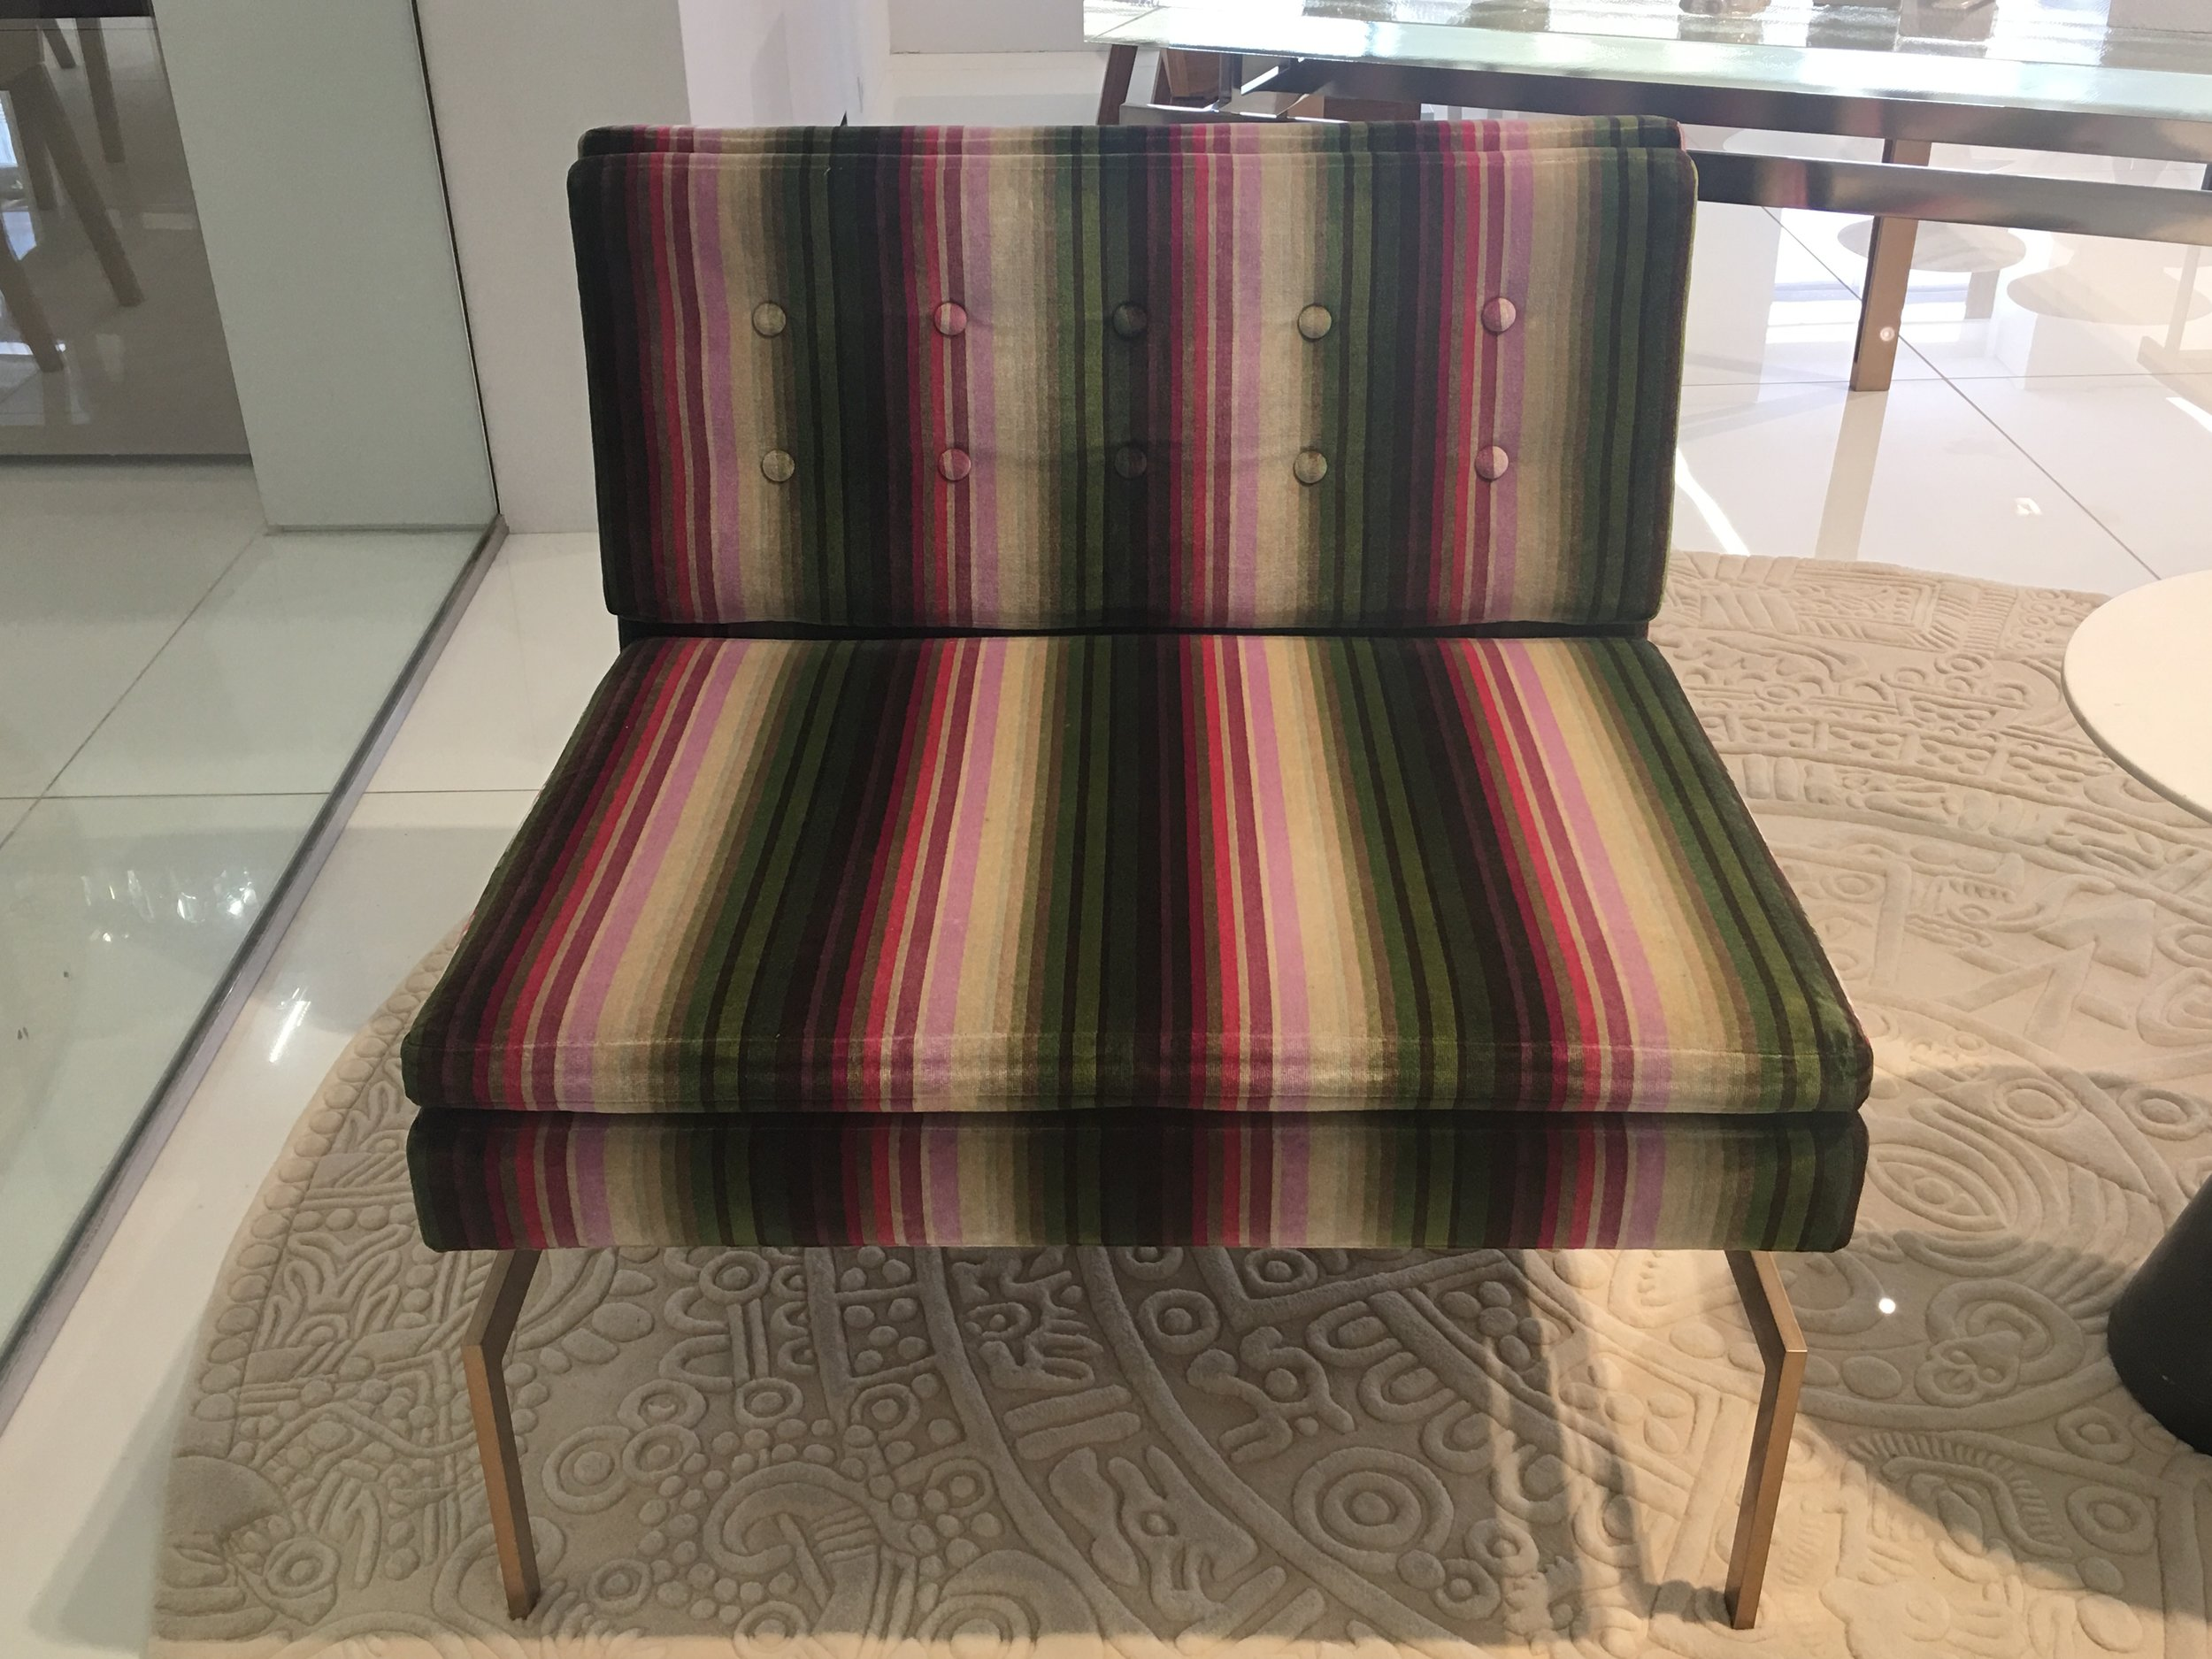 STRIPED CHAIR AT KGBL SHOWROOM - 200 LEX